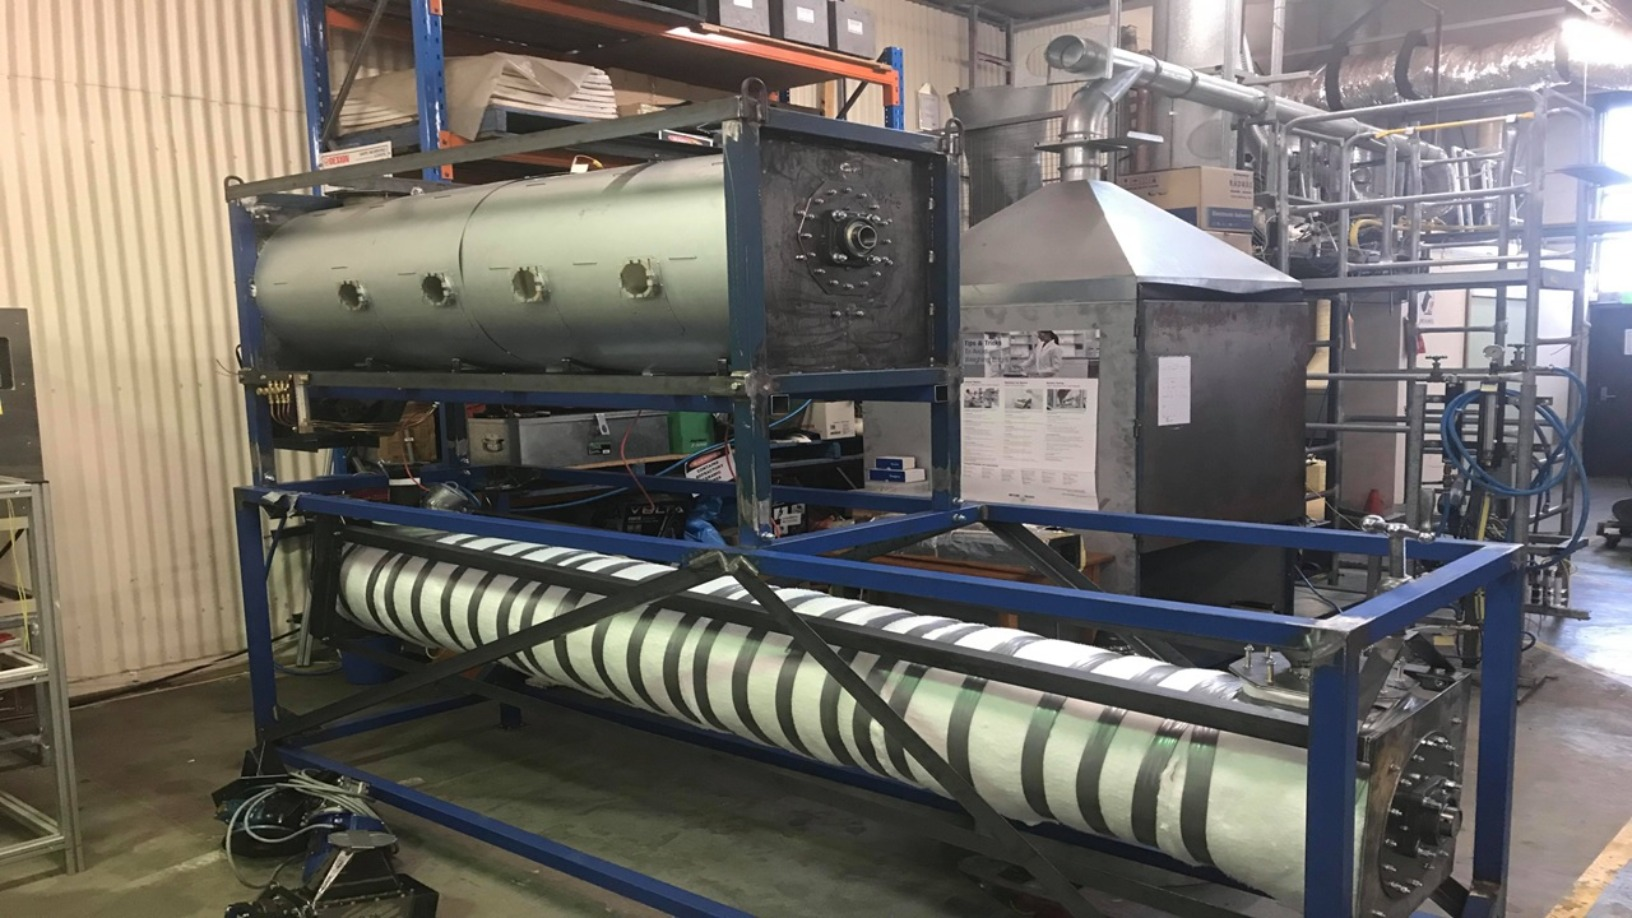 Bygen: Turning waste into activated carbon